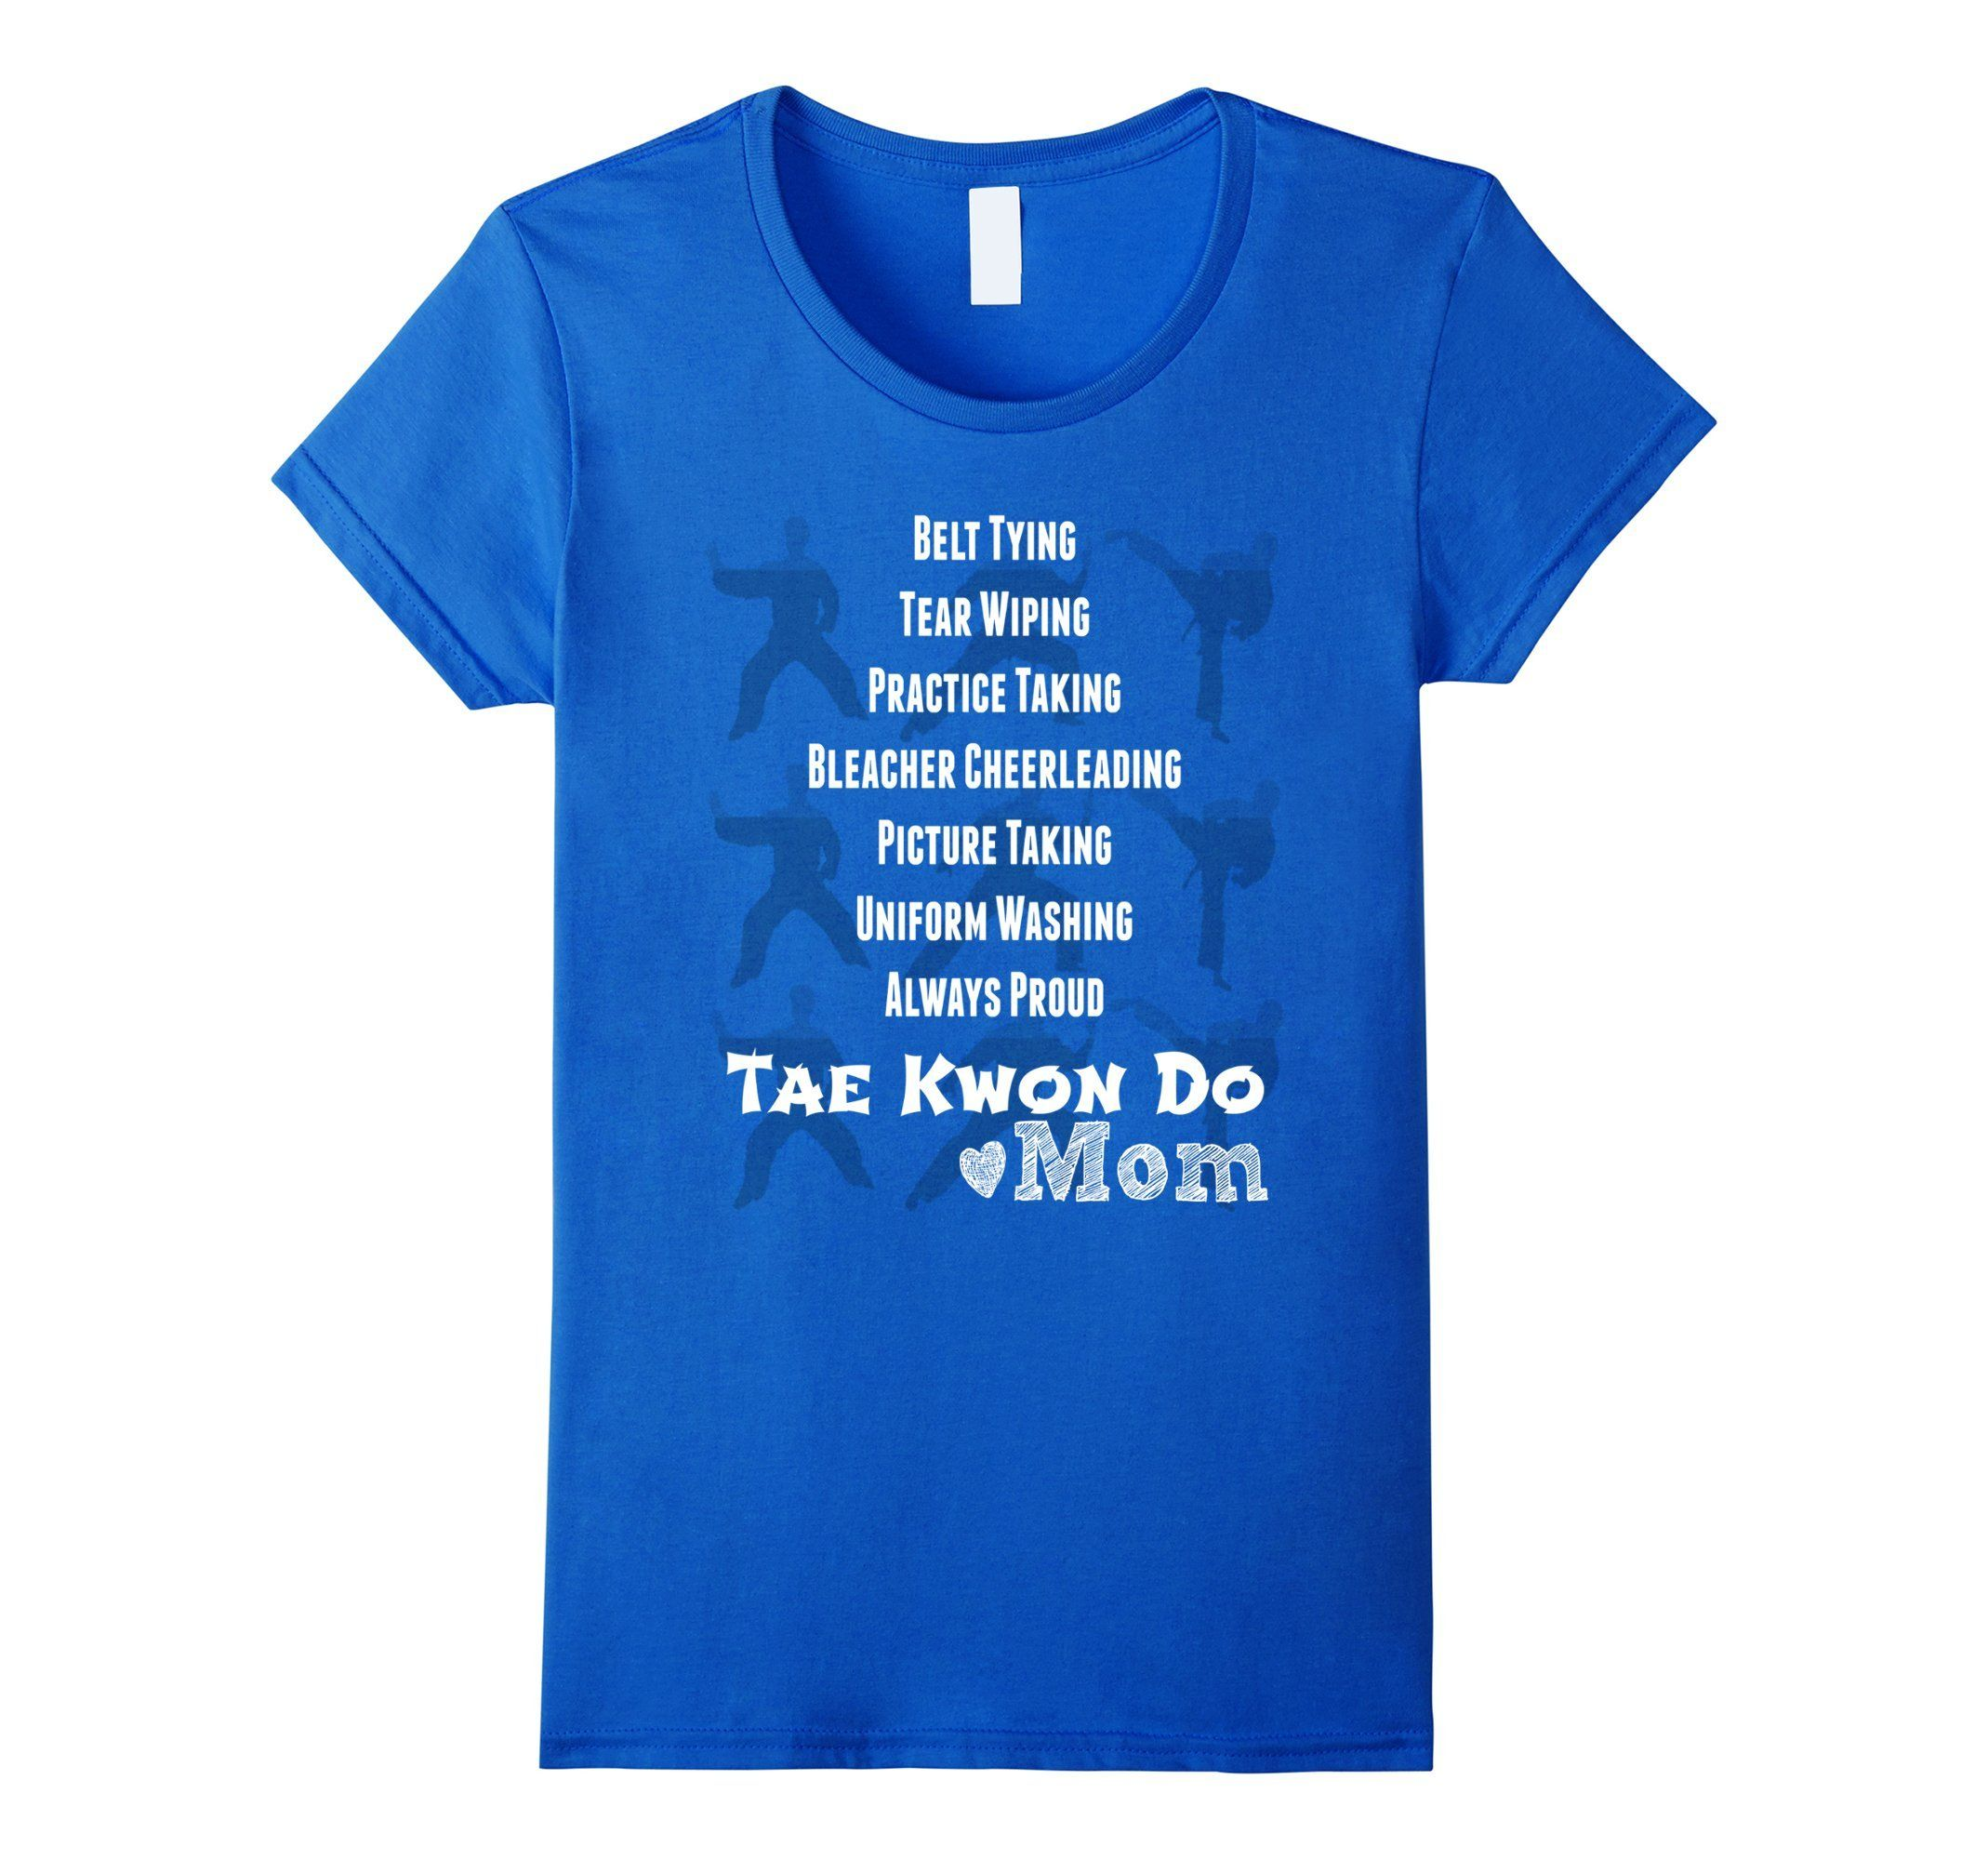 Shirt funny women quotes quotesgram - Tae Kwon Do Mom Shirt Martial Arts Black Belt Taekwondo Top Female Medium Royal Blue